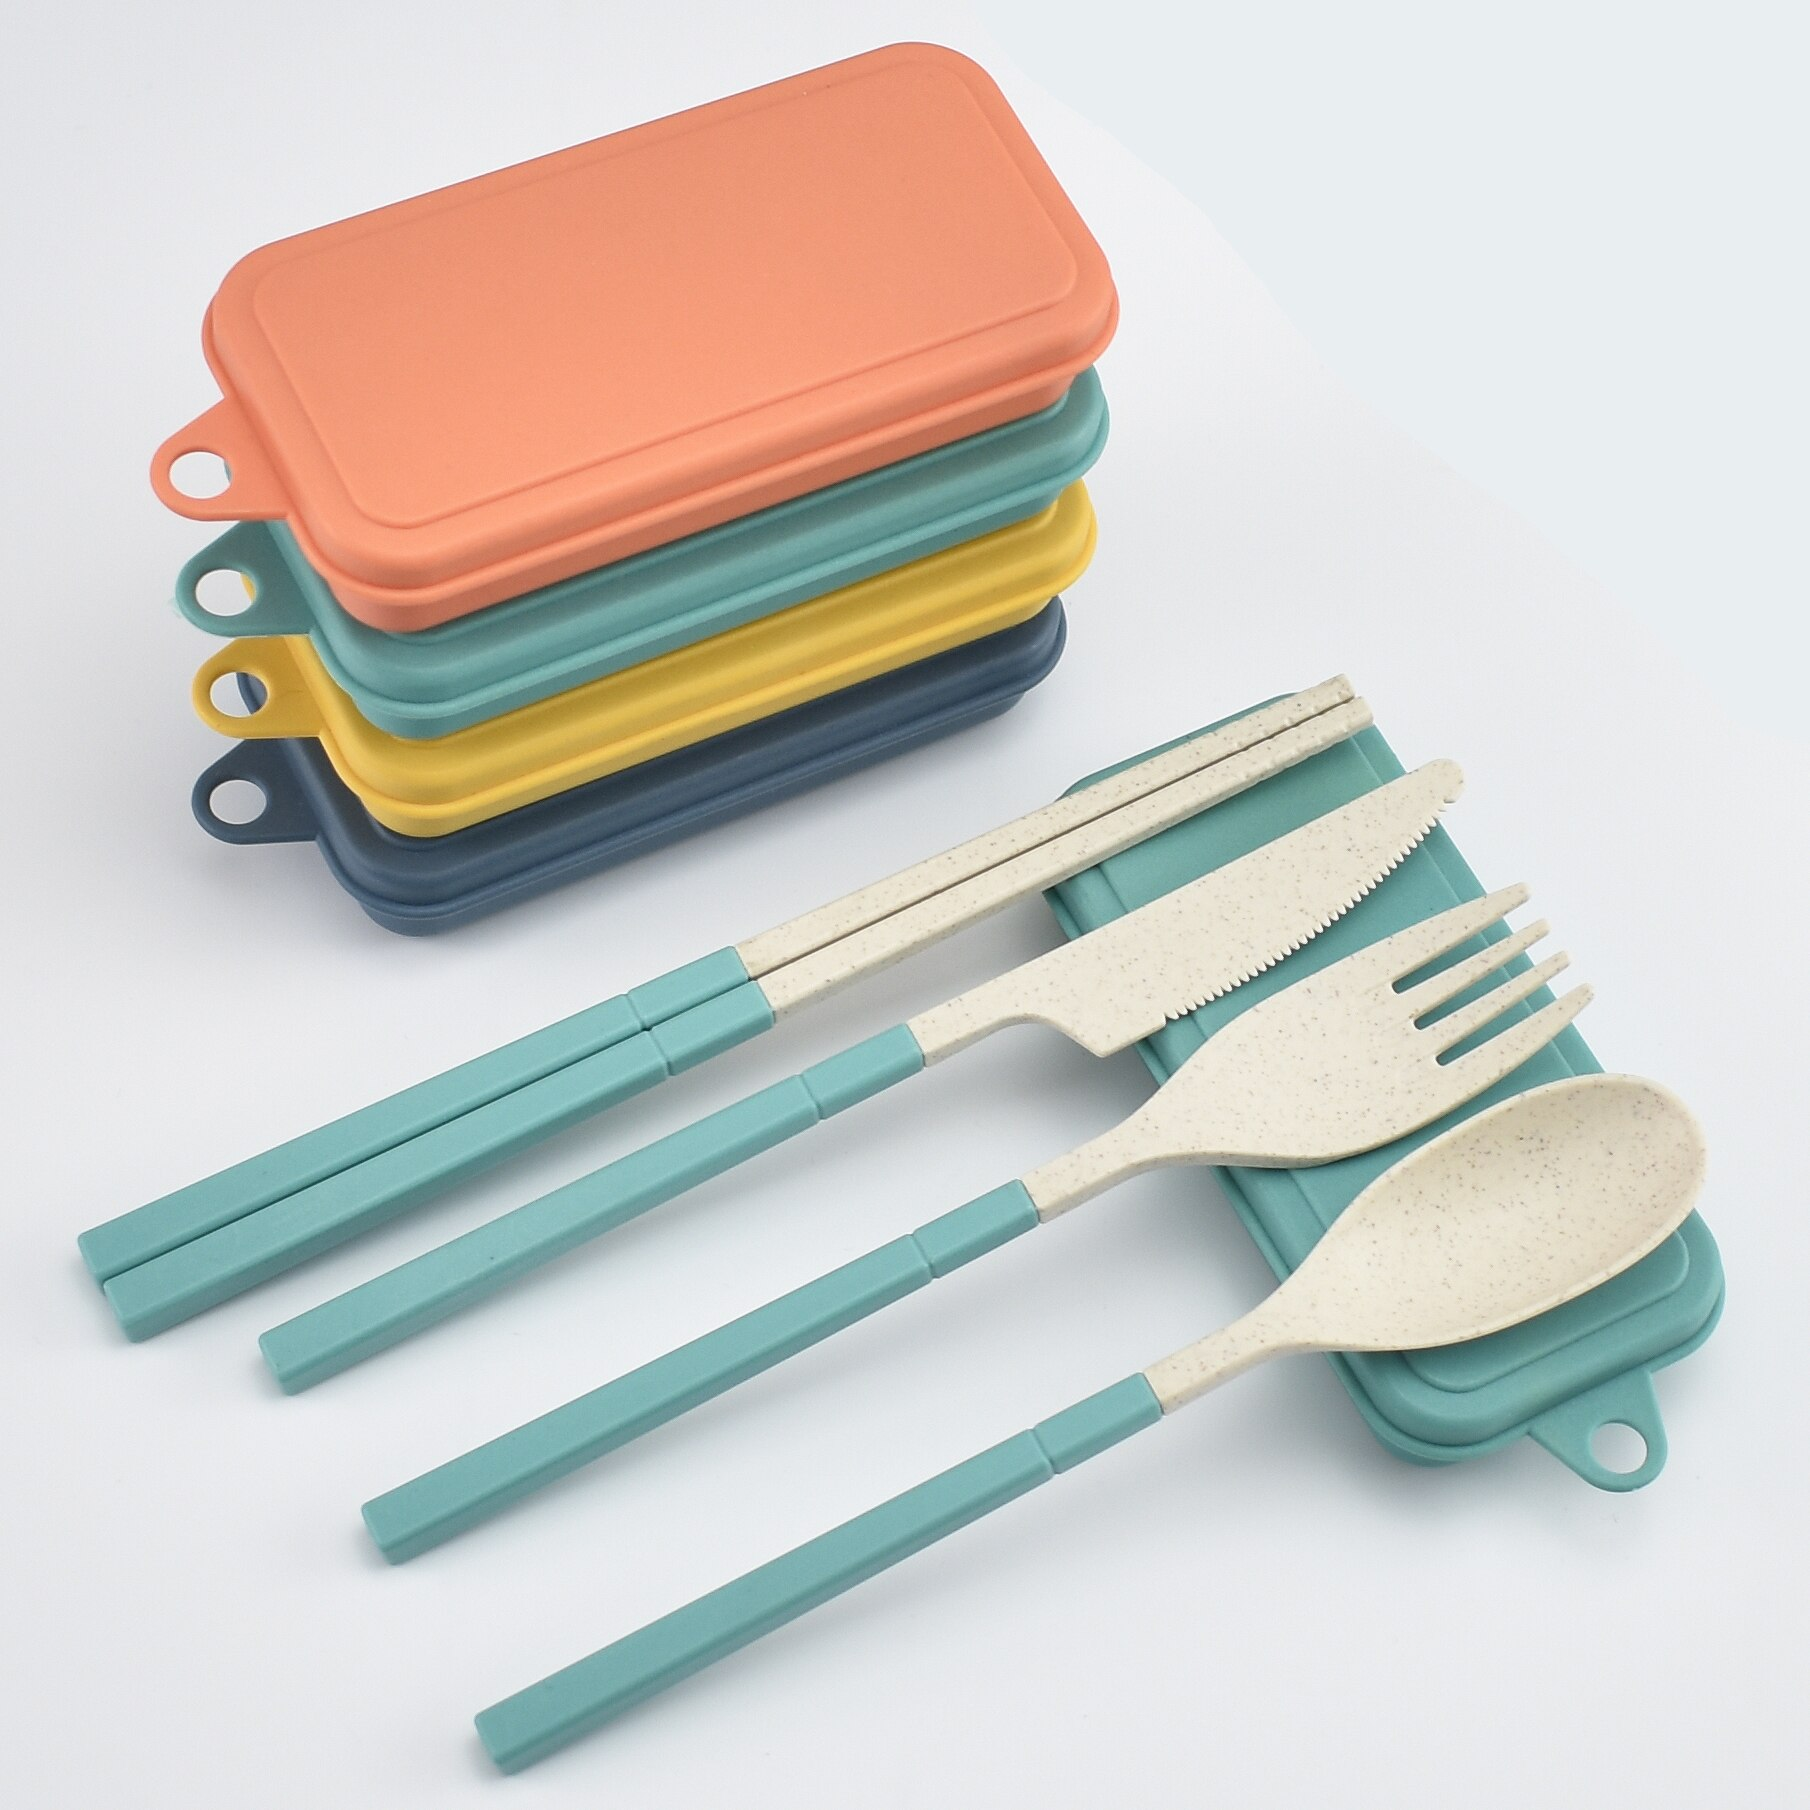 Spoon Fork Fork Knife Cutlery Set Wheat Straw Wheat Straw Portable Spoon Fork Knife Chopsticks Cutlery Set With Box Foldable Removable For Outdoor Travel